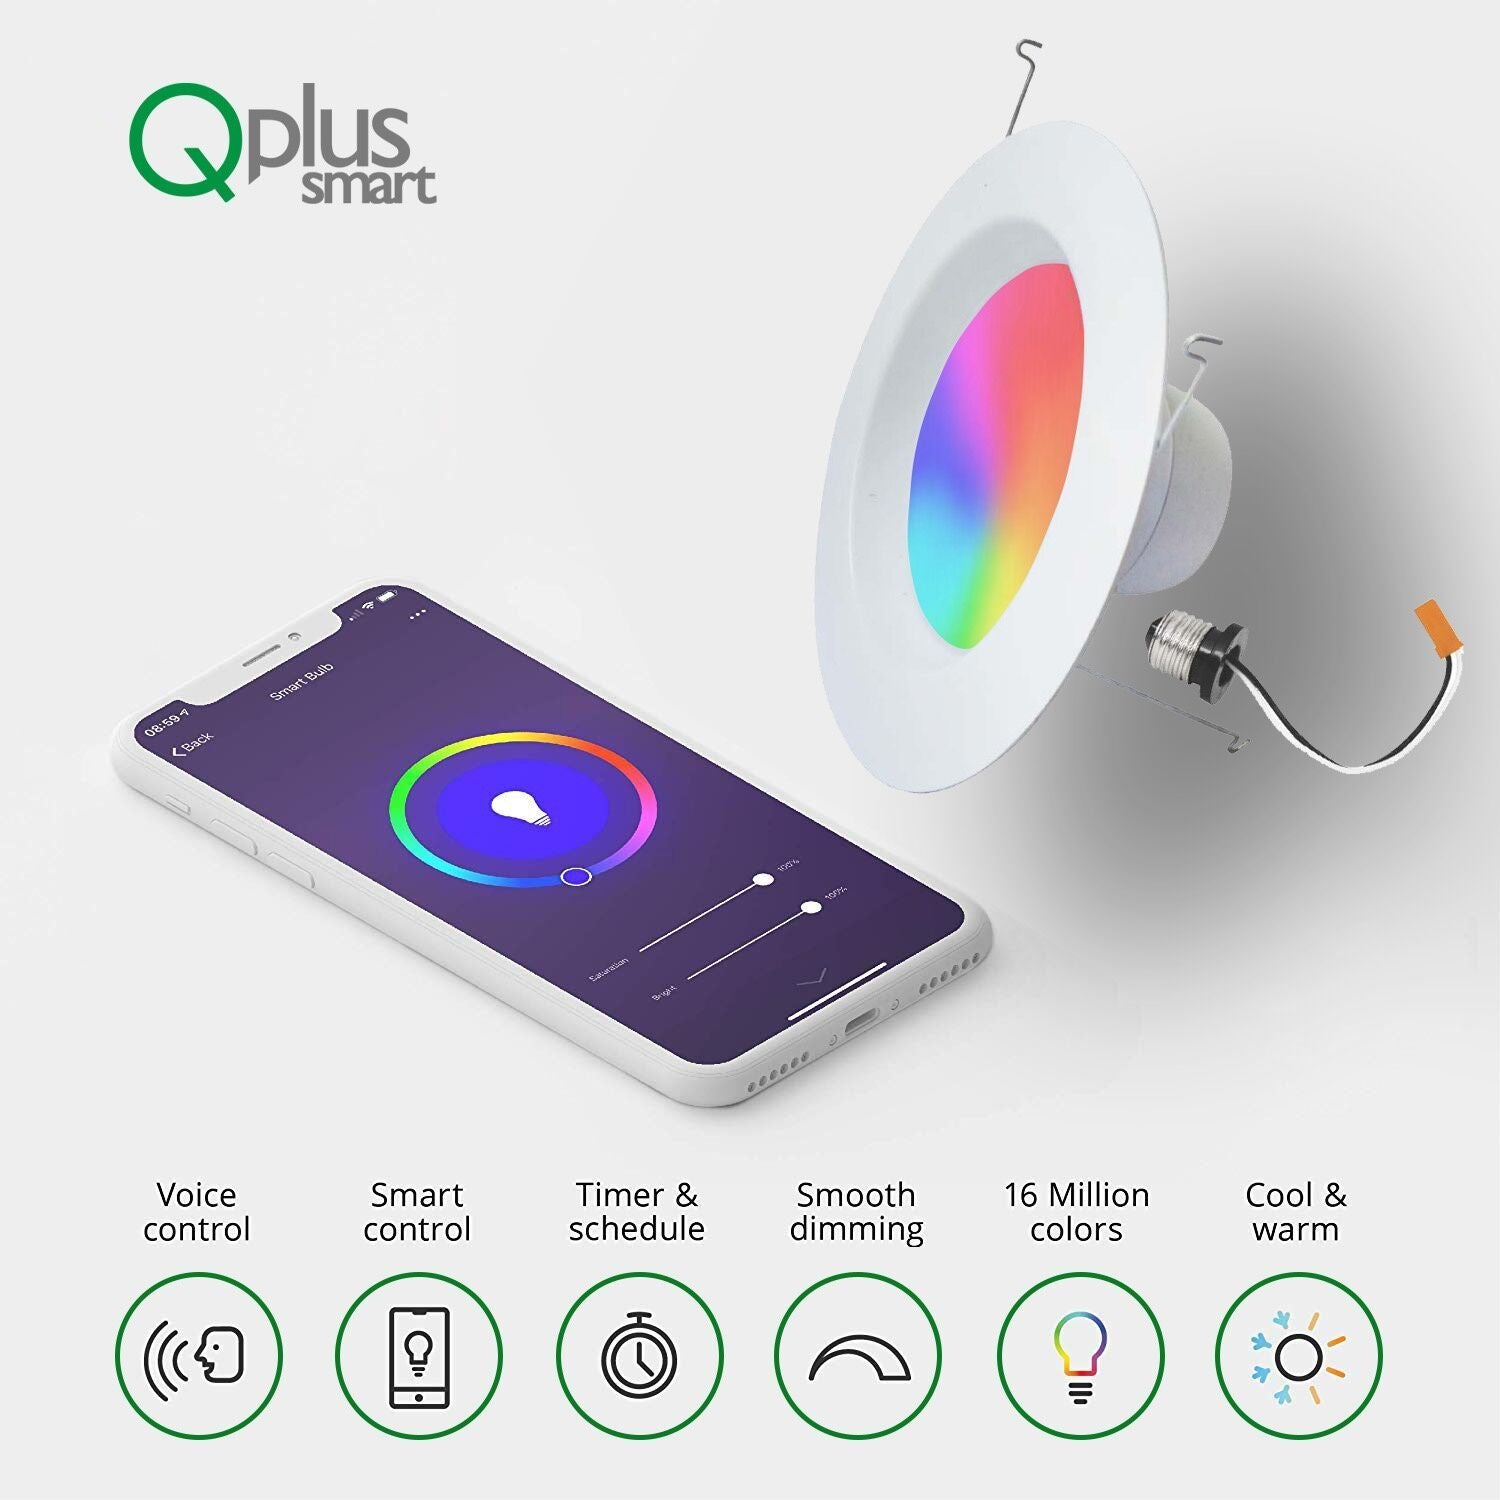 QPlus 5/6 Inch Smart LED Downlight (WiFi - No Hub) - Dimmable, 16 Million Colors & Tunable White 2700K-6500K - QPlus Home - Brighten Your Life